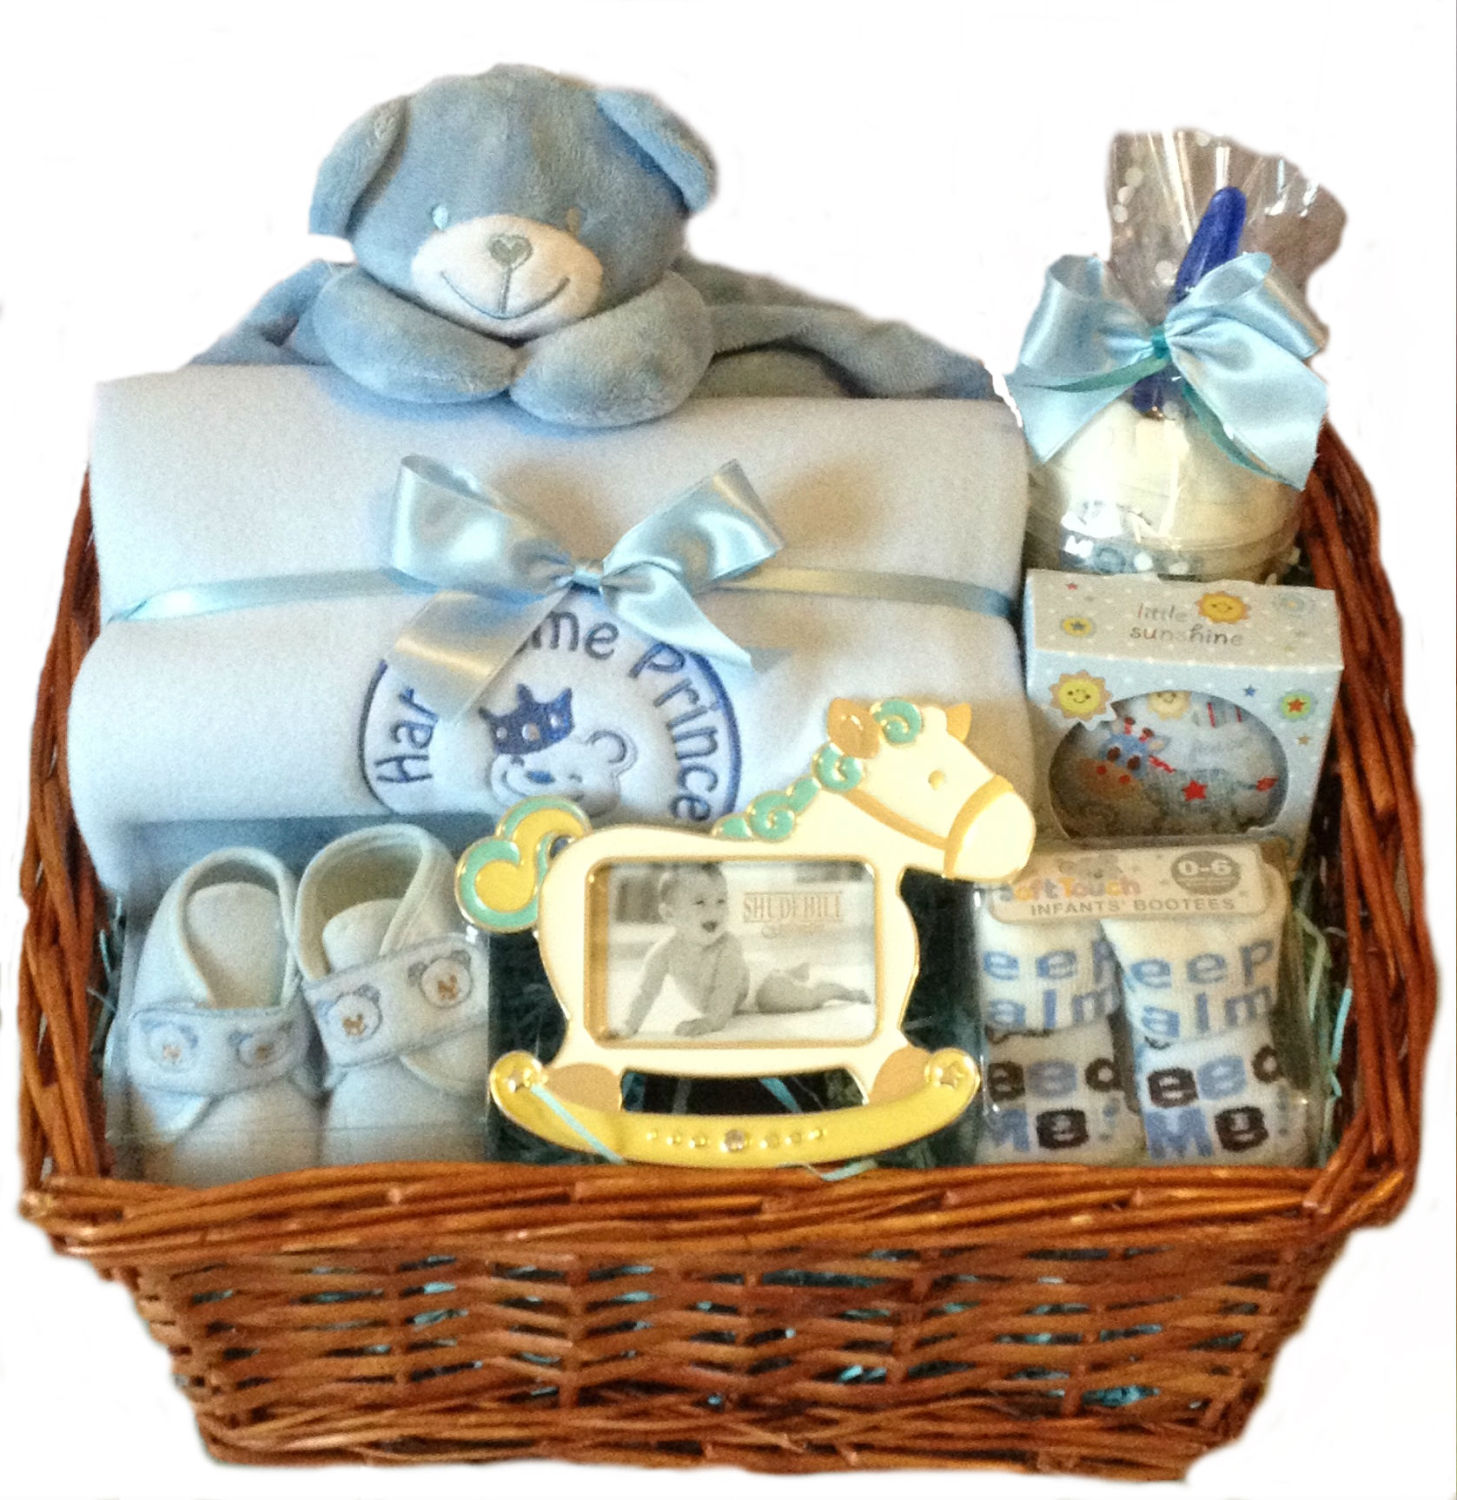 New Baby Boy Gifts For Delivery : Baby boy gift hamper new for delivered